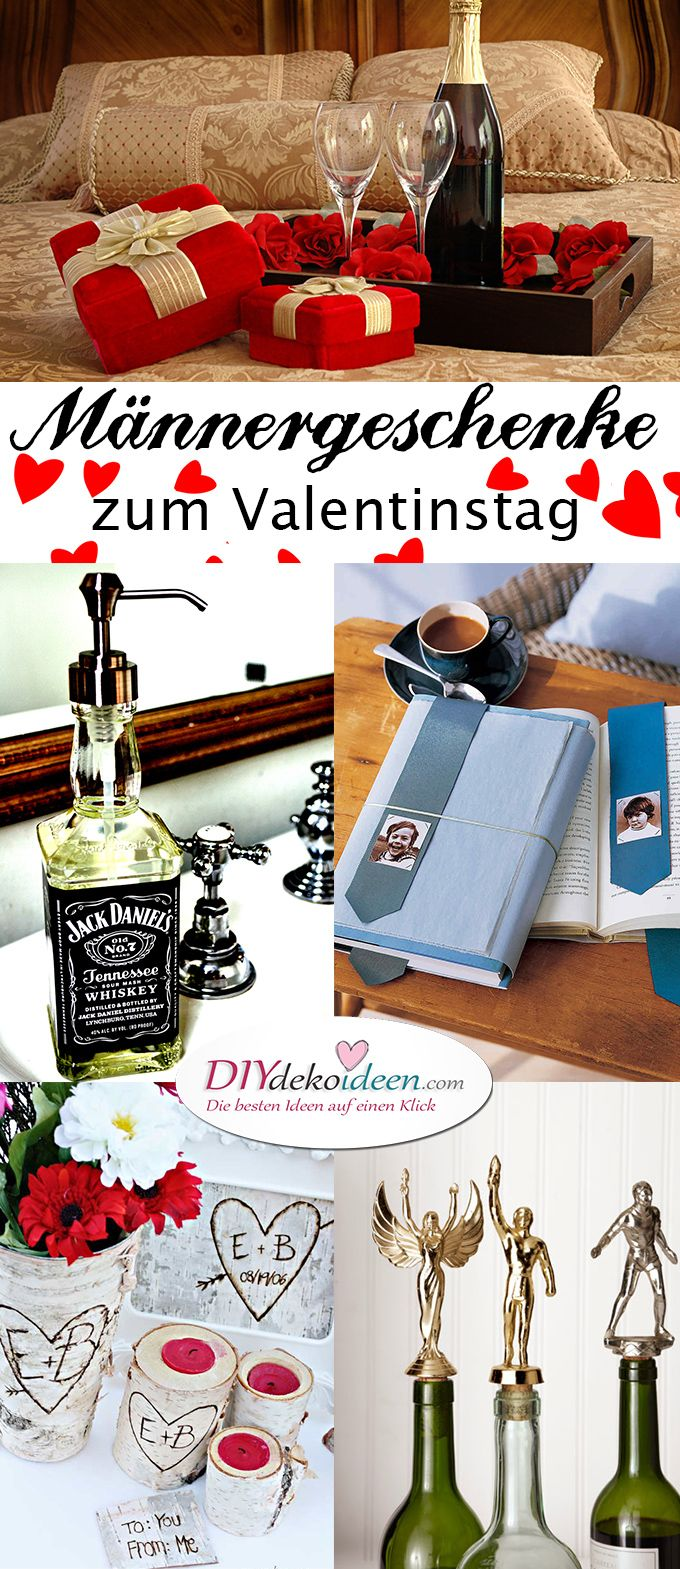 m nnergeschenke zum valentinstag diy bastelideen geschenk basteln valentinstag geschenke. Black Bedroom Furniture Sets. Home Design Ideas